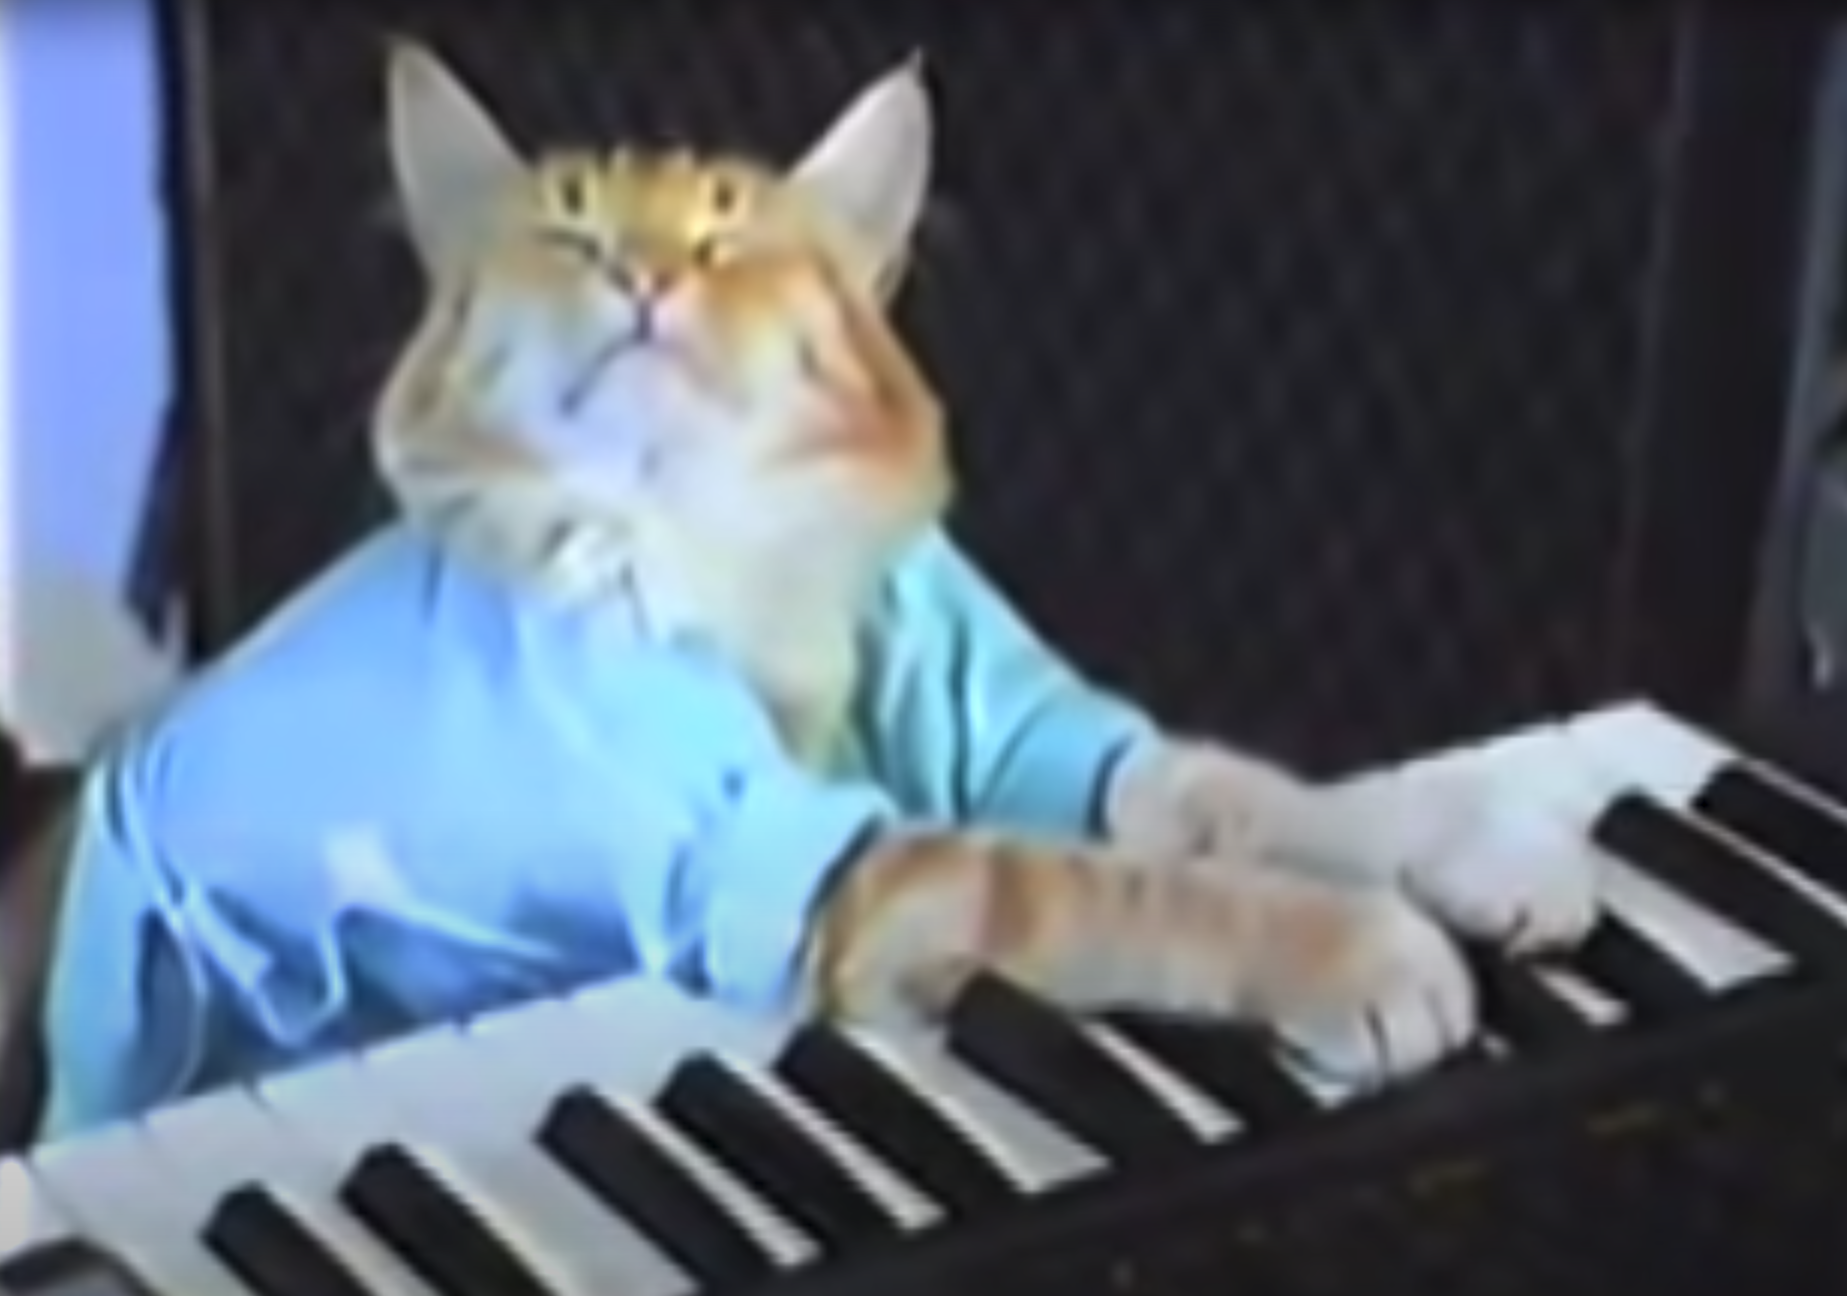 A cat in a t-shirt playing a piano